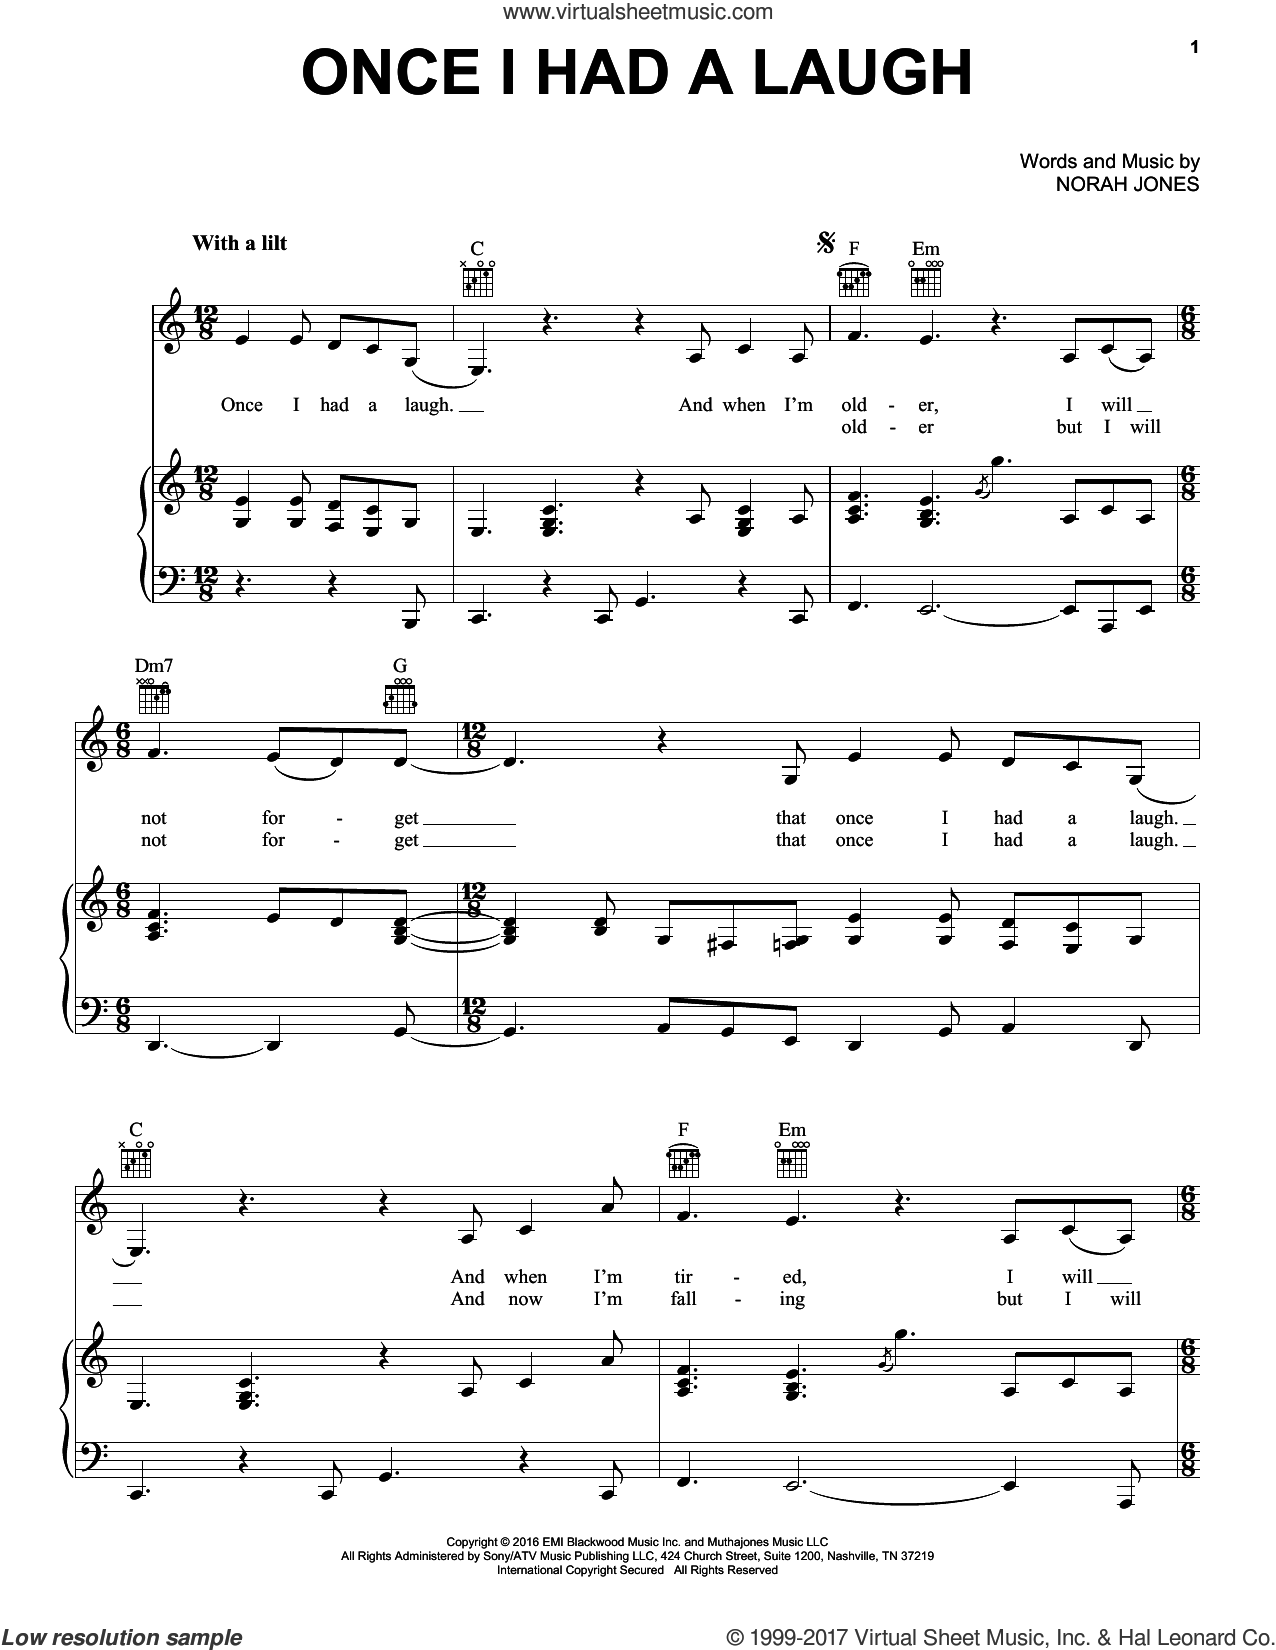 Once I Had A Laugh sheet music for voice, piano or guitar by Norah Jones, intermediate skill level